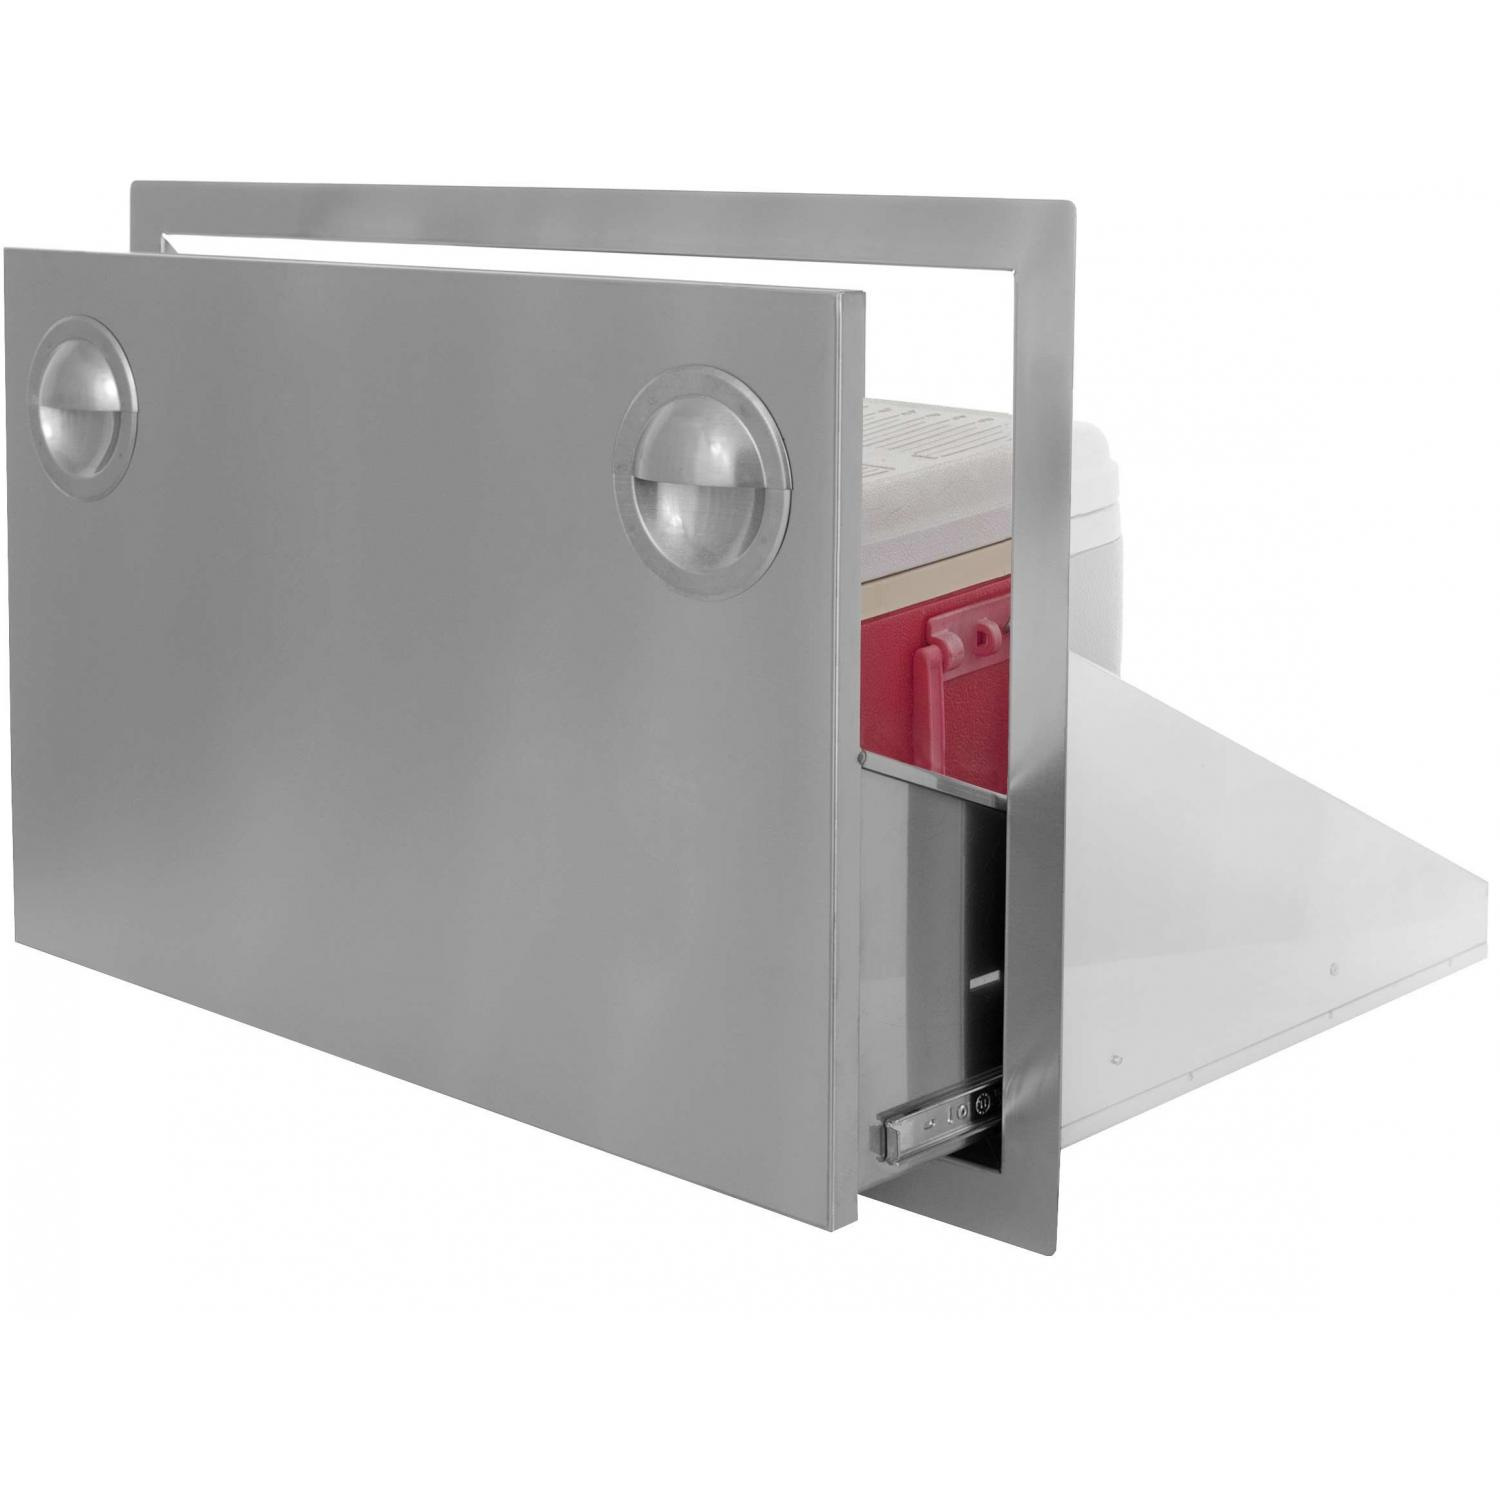 Bbqguys.com Portofino Series 30 Inch Stainless Steel Roll-out Ice Chest Storage Drawer